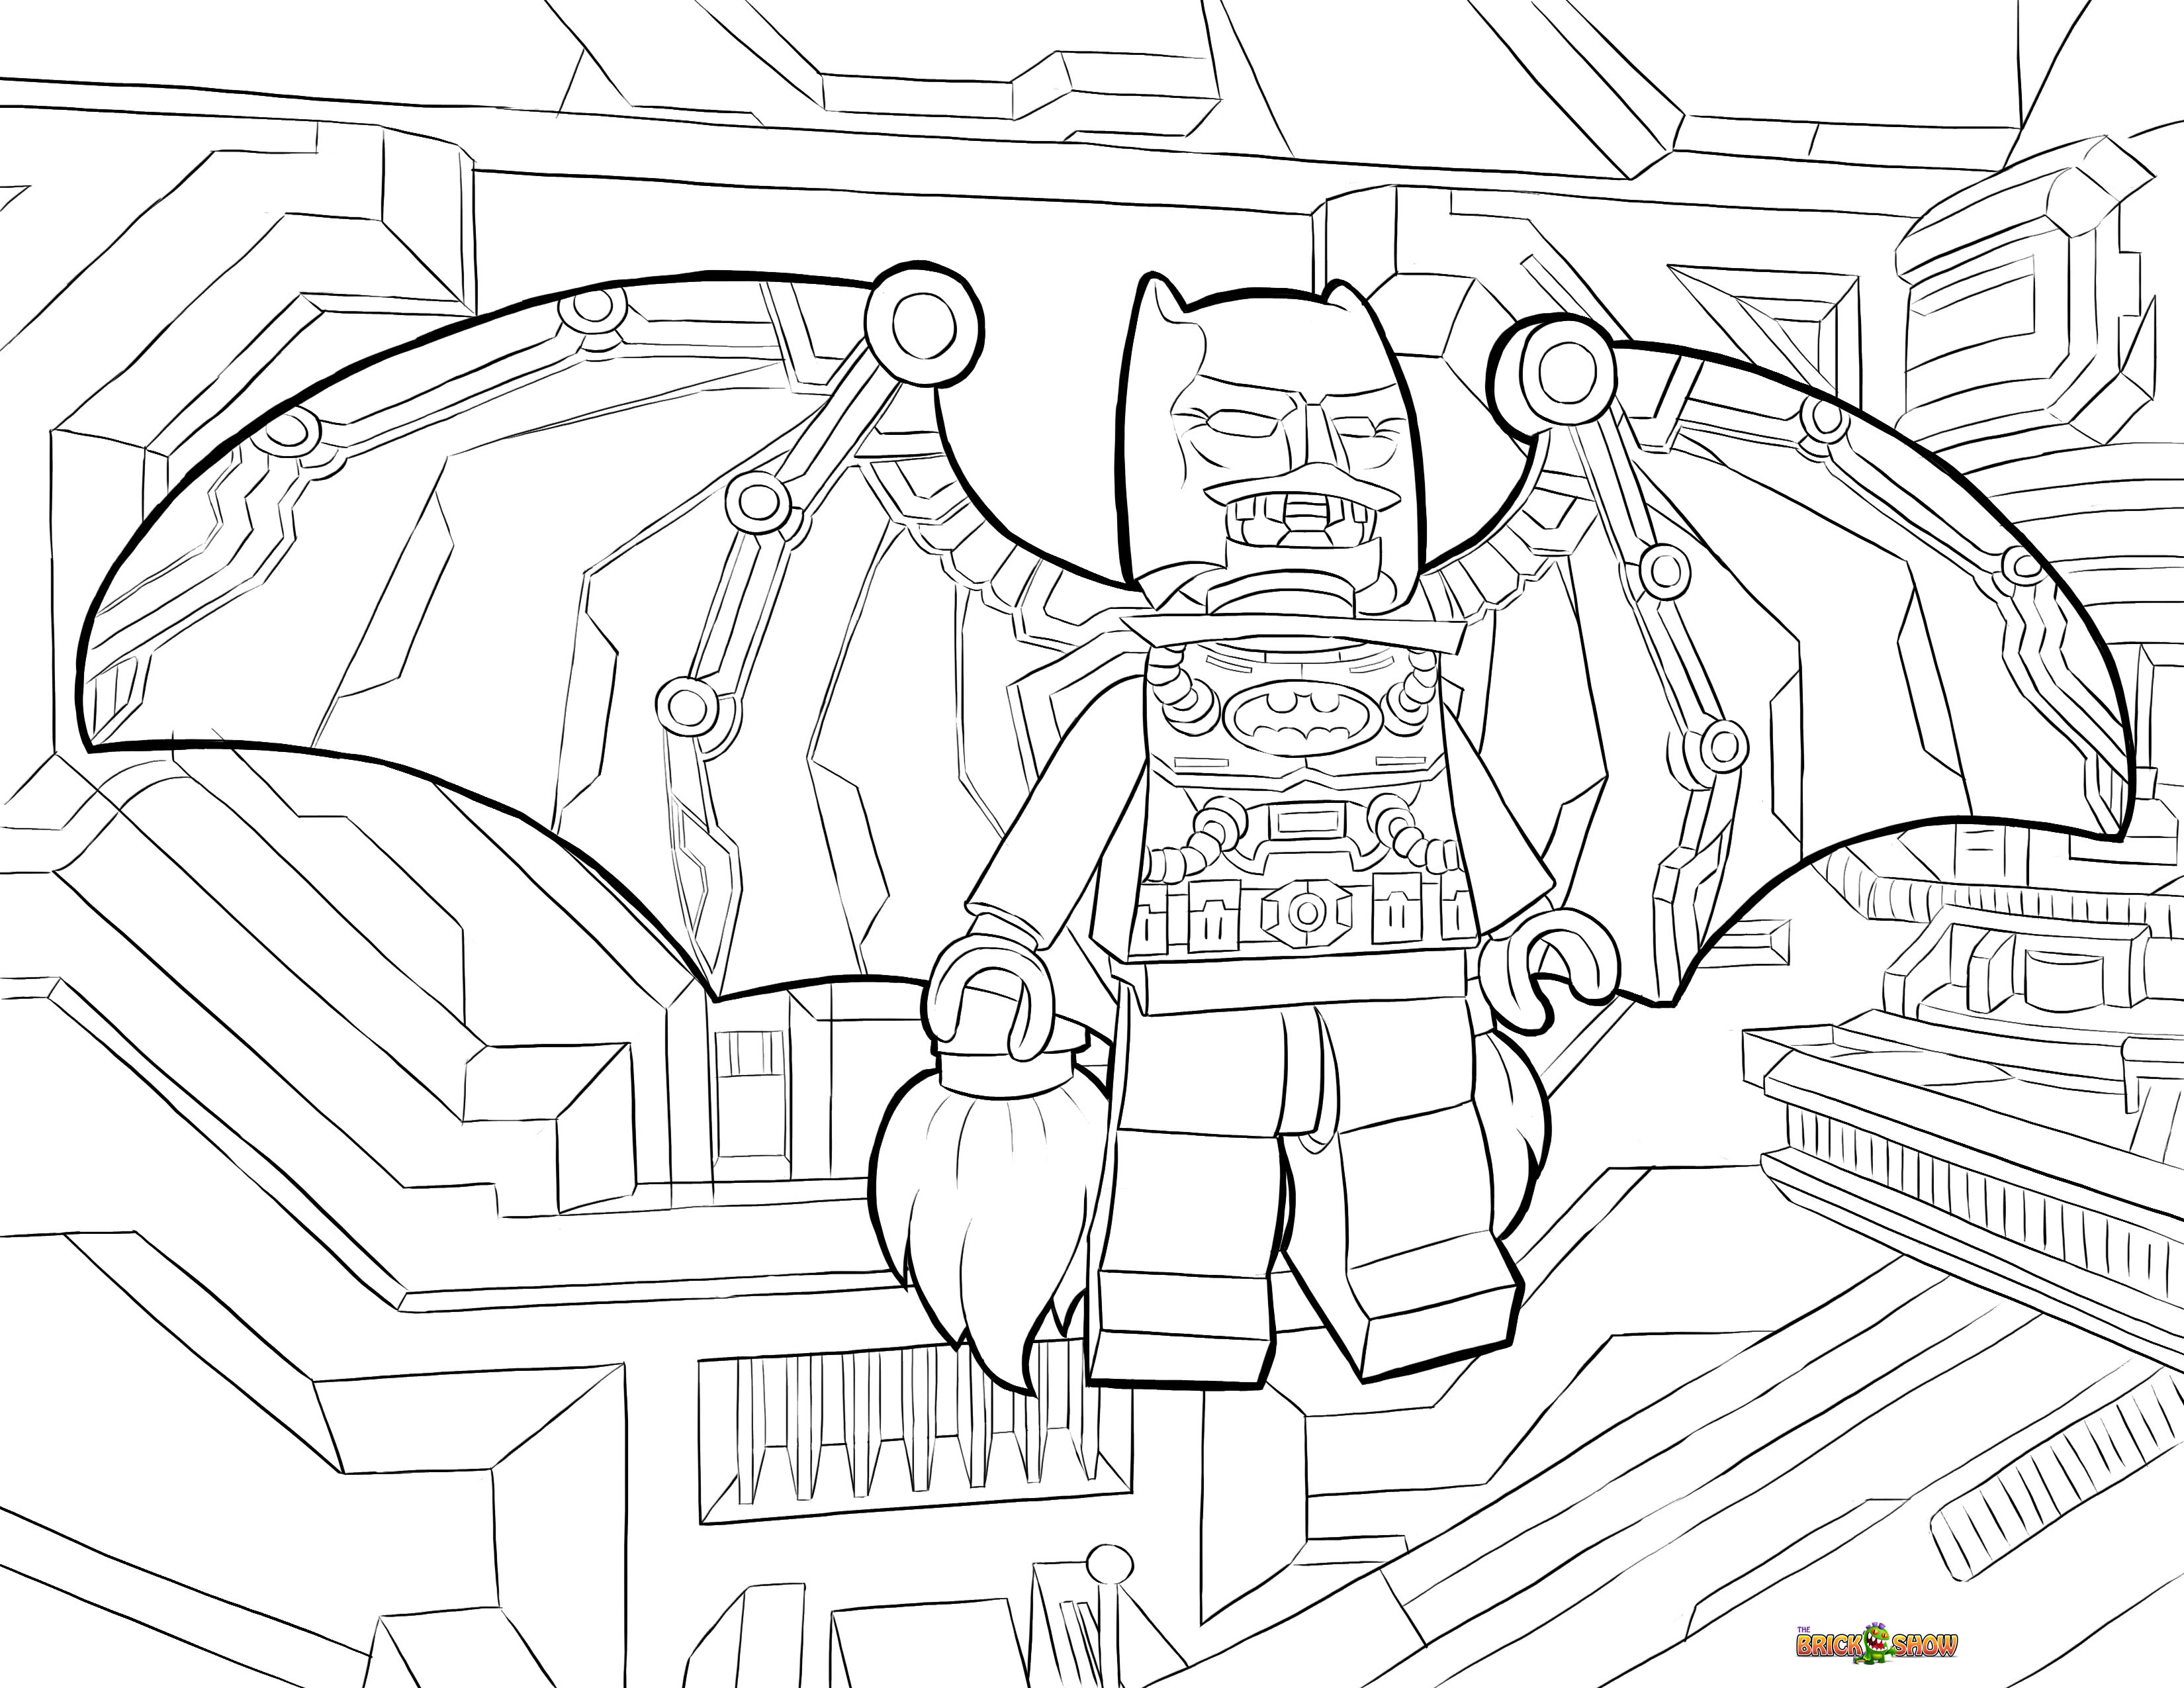 Lego Batman And Robin Coloring Pages At Getdrawings Free Download